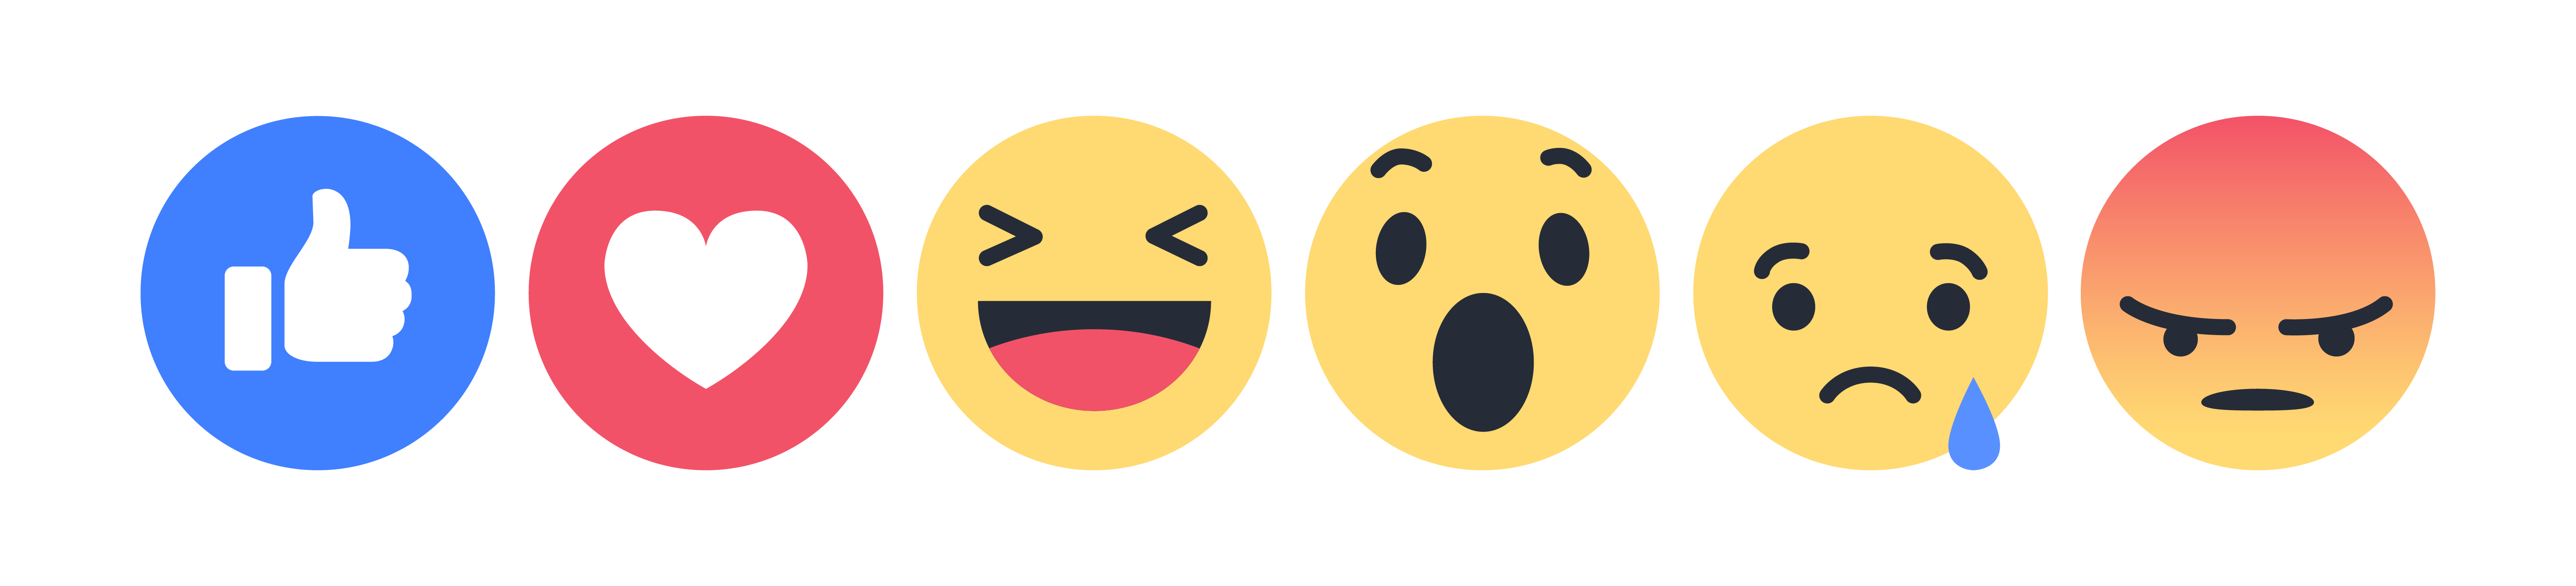 Brand resources reactions. Wow clipart emoji facebook